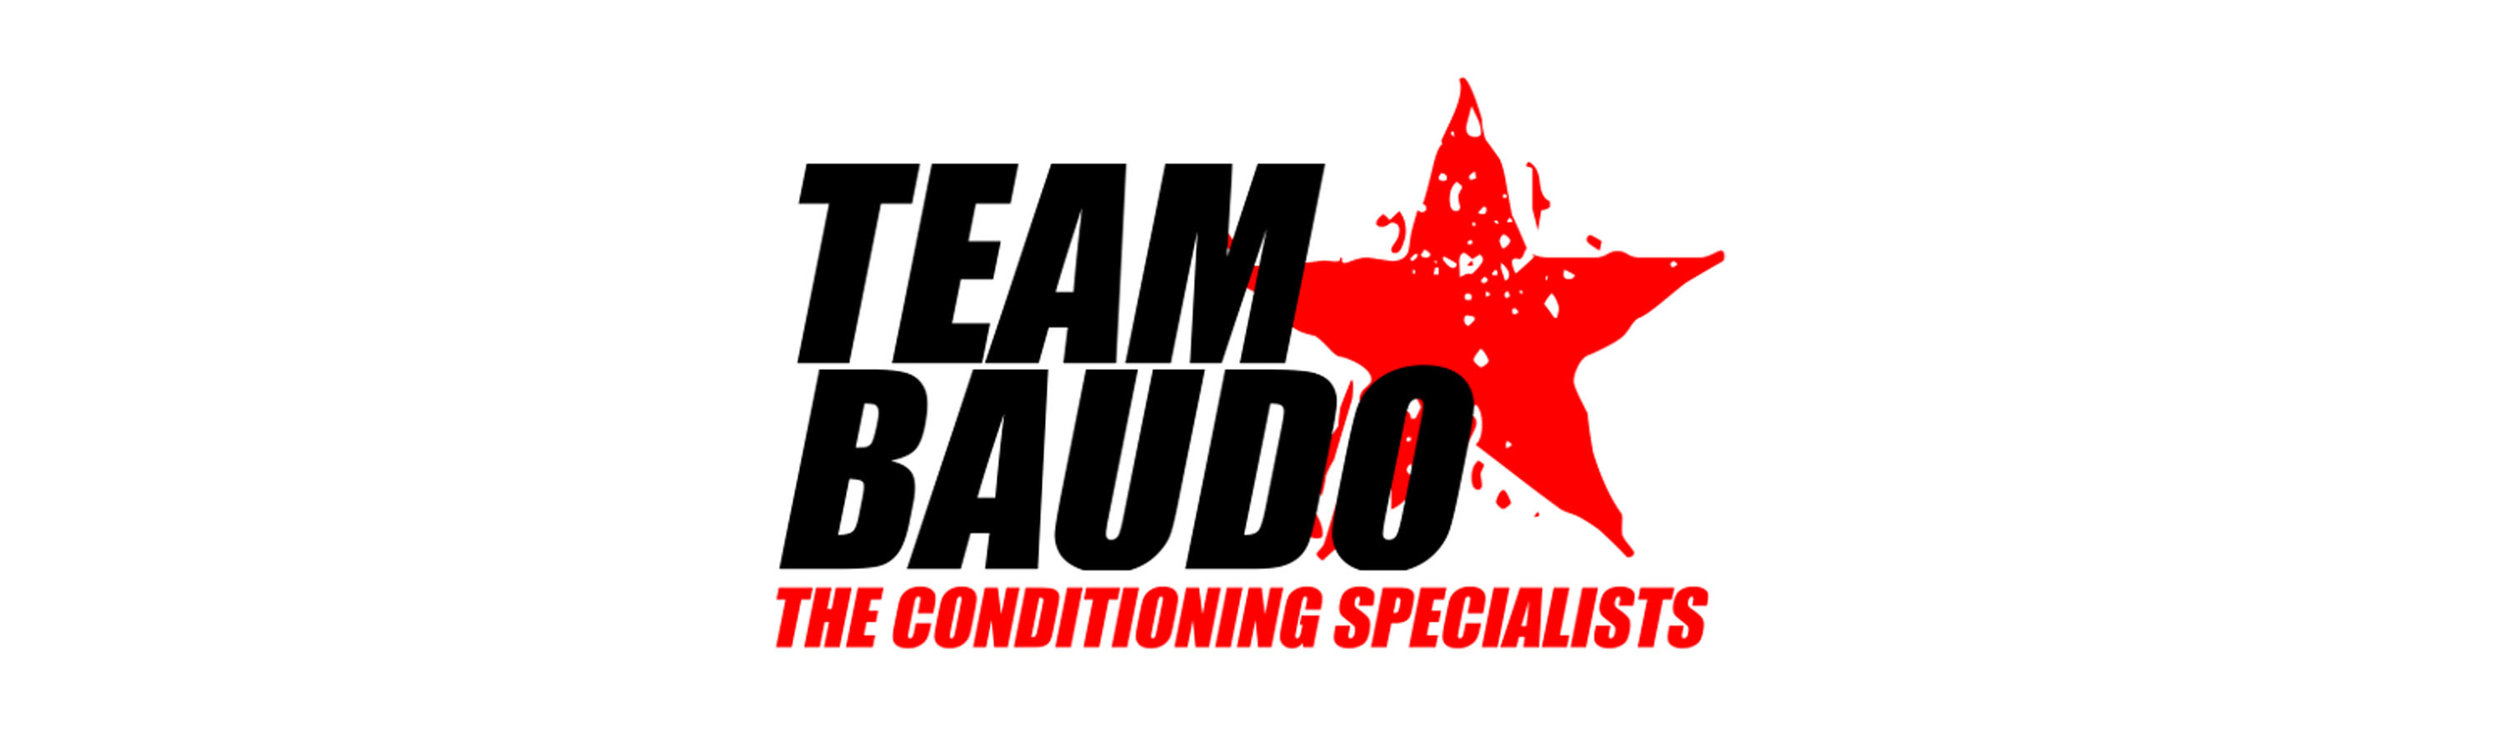 Steve Baudo - Director @ Team BaudoBranding DesignI had been running a successful personal training business with face-to-face clients but needed to take my brand to the next level.I was lucky enough to be introduced to Matt through some friends who have had success with their own business development and was very keen to seek his advice as to how I could develop and grow my brand Team Baudo.6 years on, not only is the branding Explosive Works put together is still being used by my company and is now widely recognised within the health and fitness contest industry.